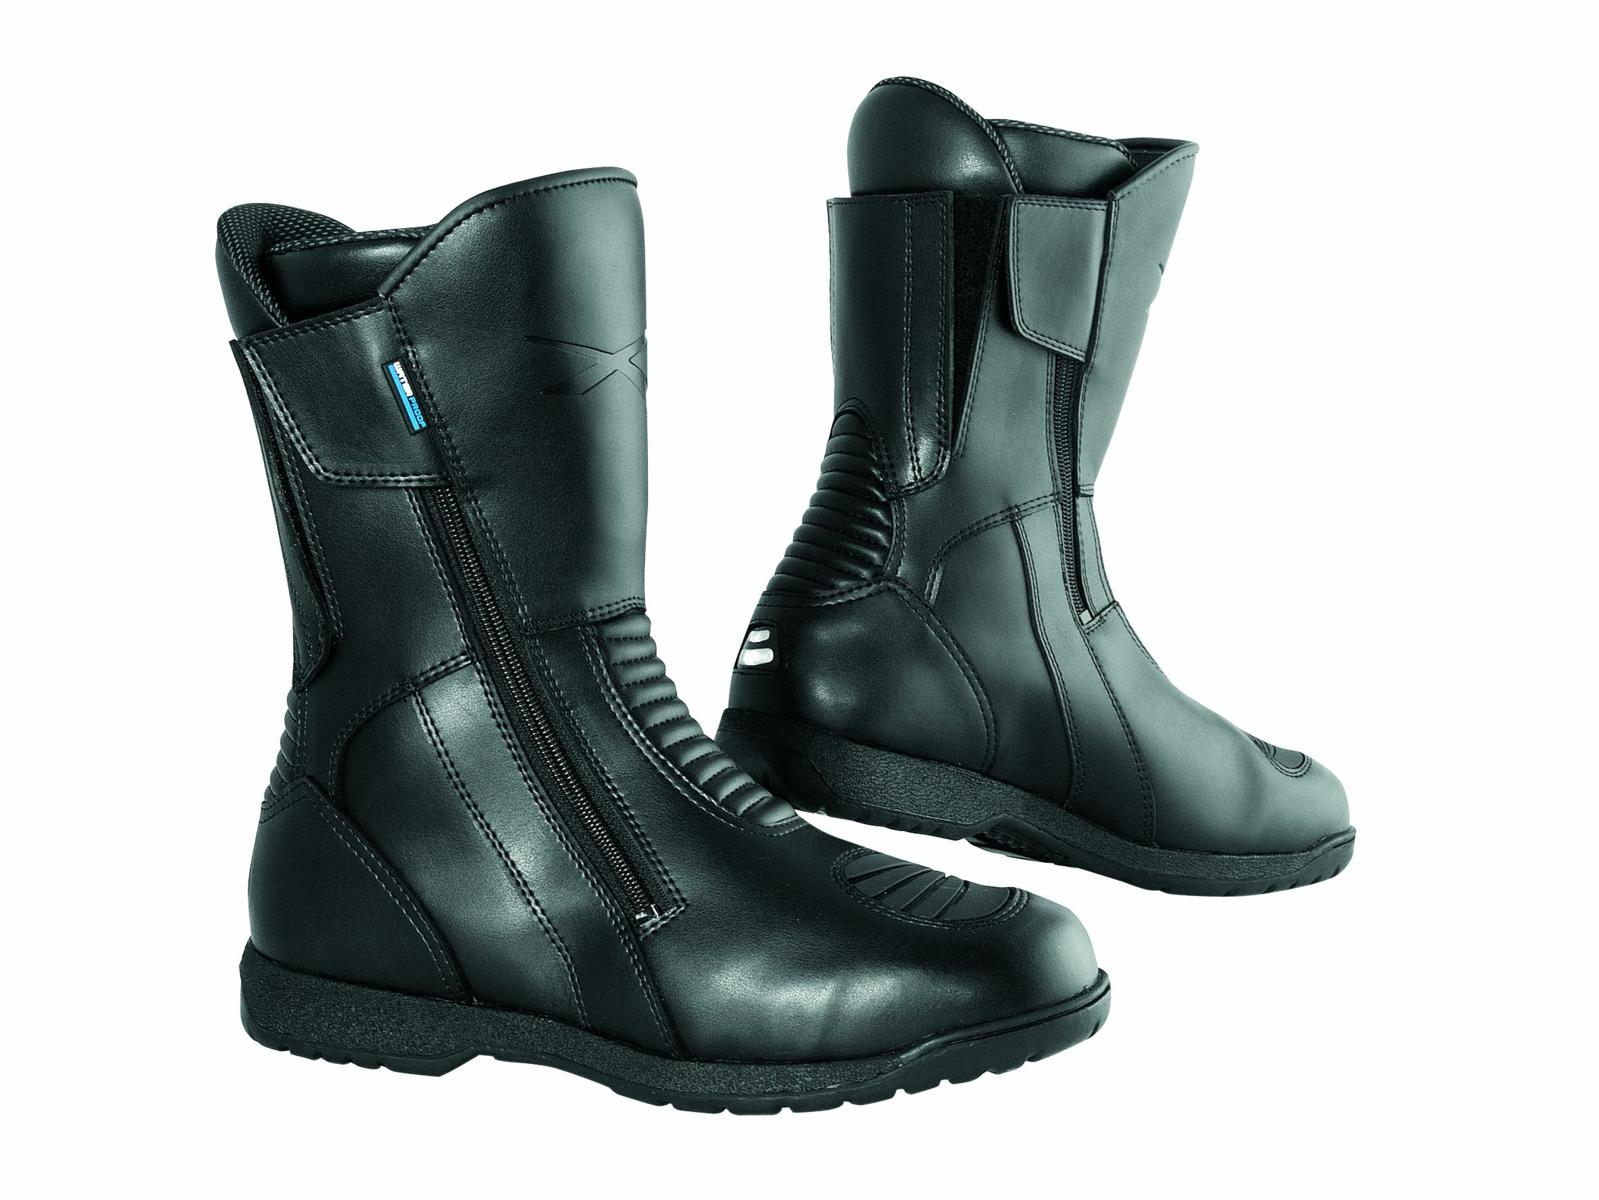 Bottes-Motard-Cuir-Moto-Piste-Scooter-Impermeable-Custom-Homme-Chaussures